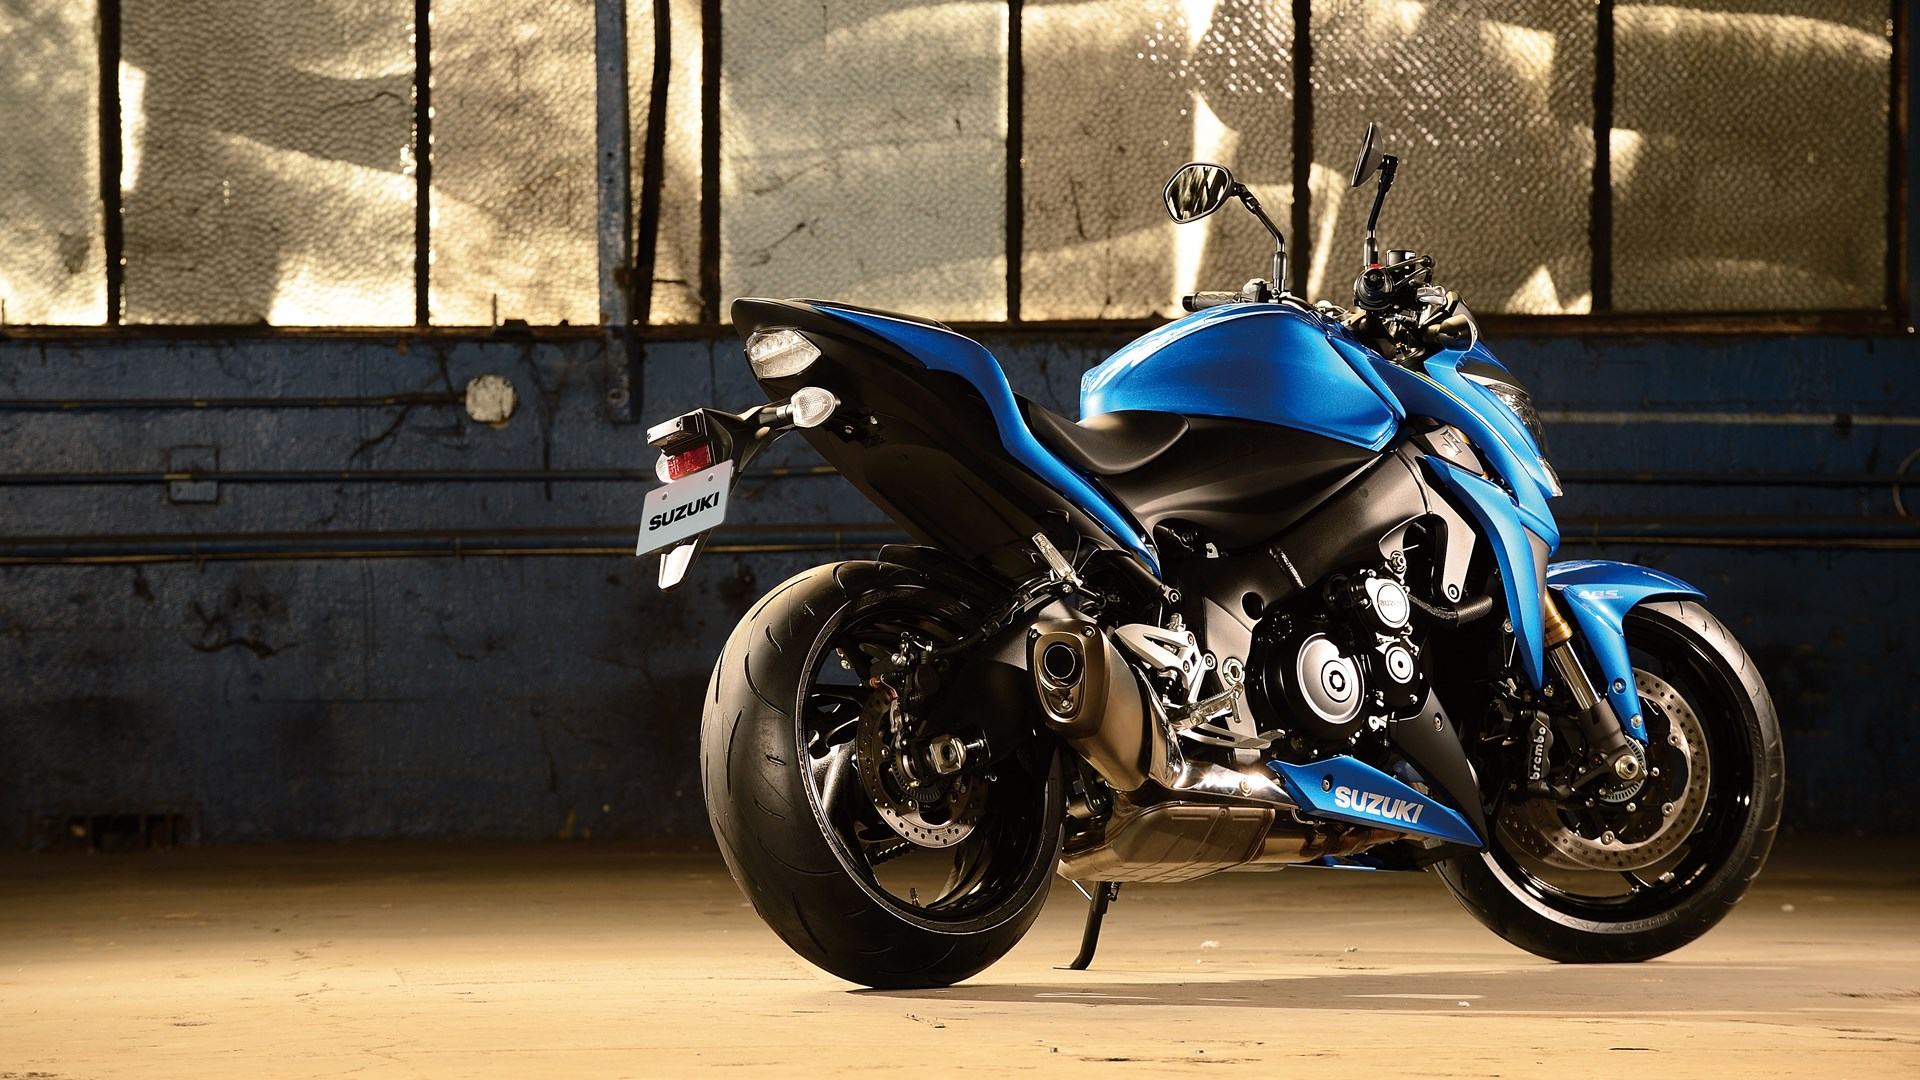 Suzuki Gsx S1000 Wallpaper Hd